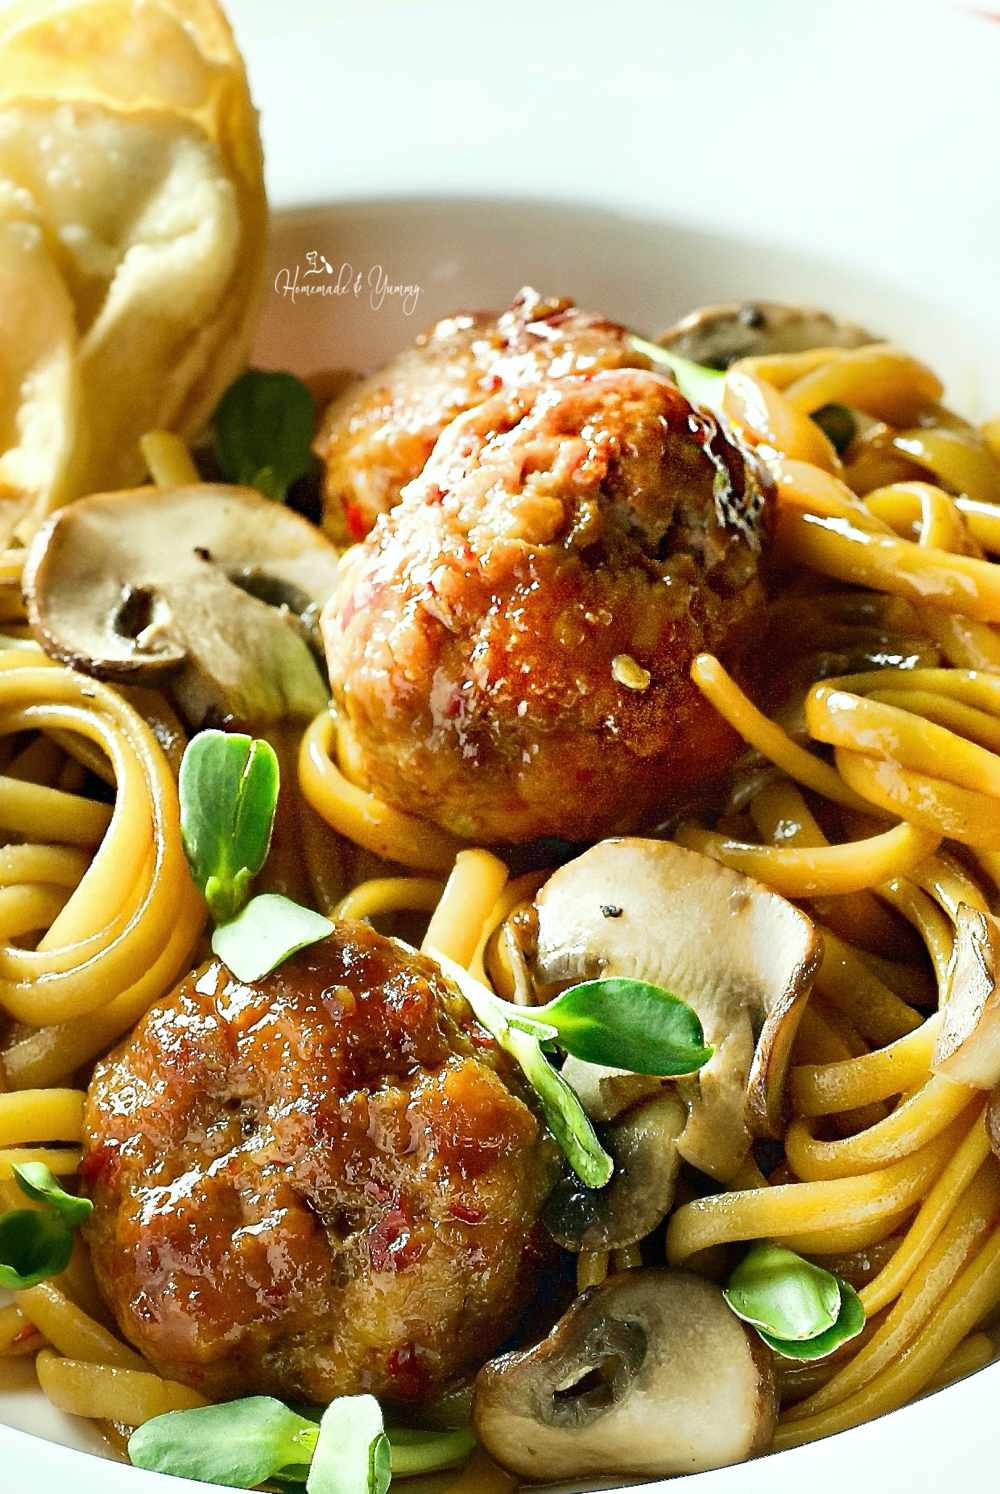 Spaghetti and meatballs Chinese style with pea shoots and mushrooms.